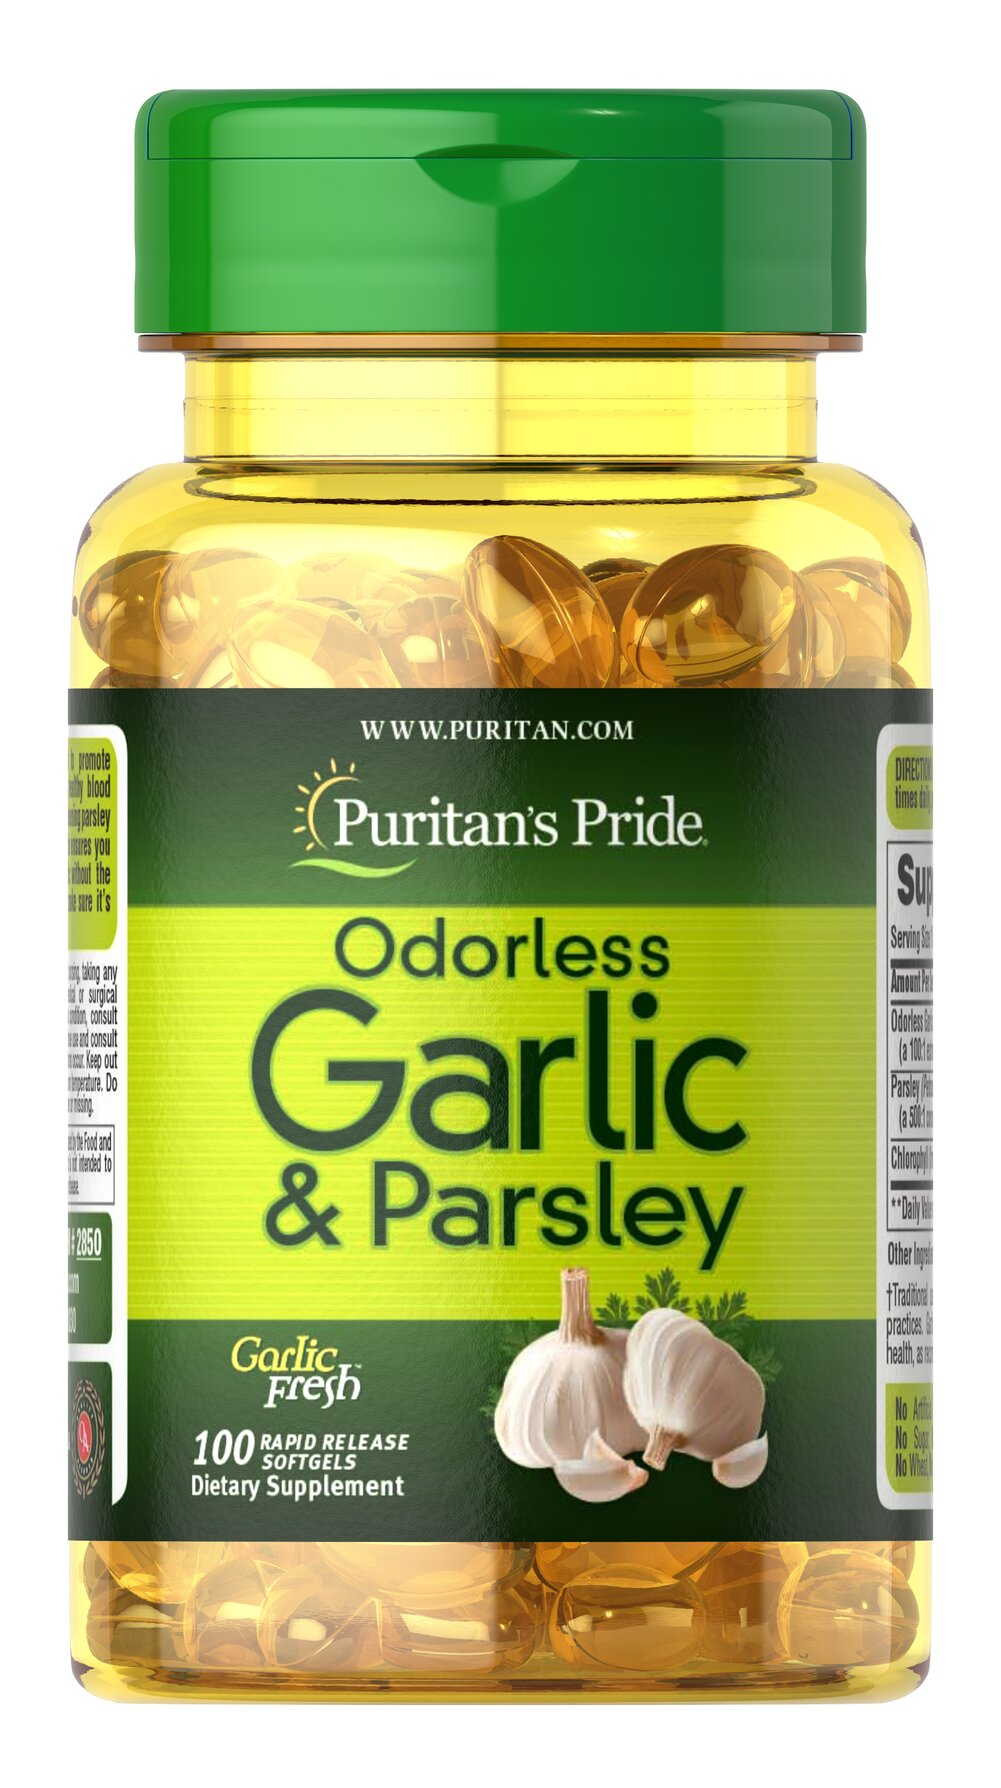 Odorless Garlic & Parsley 500 mg / 100 mg <p>Promotes heart and cardiovascular function**</p><p>Provides cholesterol support**</p><p>Possesses beneficial antioxidant properties**</p><p>Traditionally used for respiratory health**</p><p>Contains breath-freshening Parsley and the plant nutrient Chlorophyll</p><p>These easy-to-swallow softgels are a great way to reap the natural benefits that Garlic has to offer without experienci